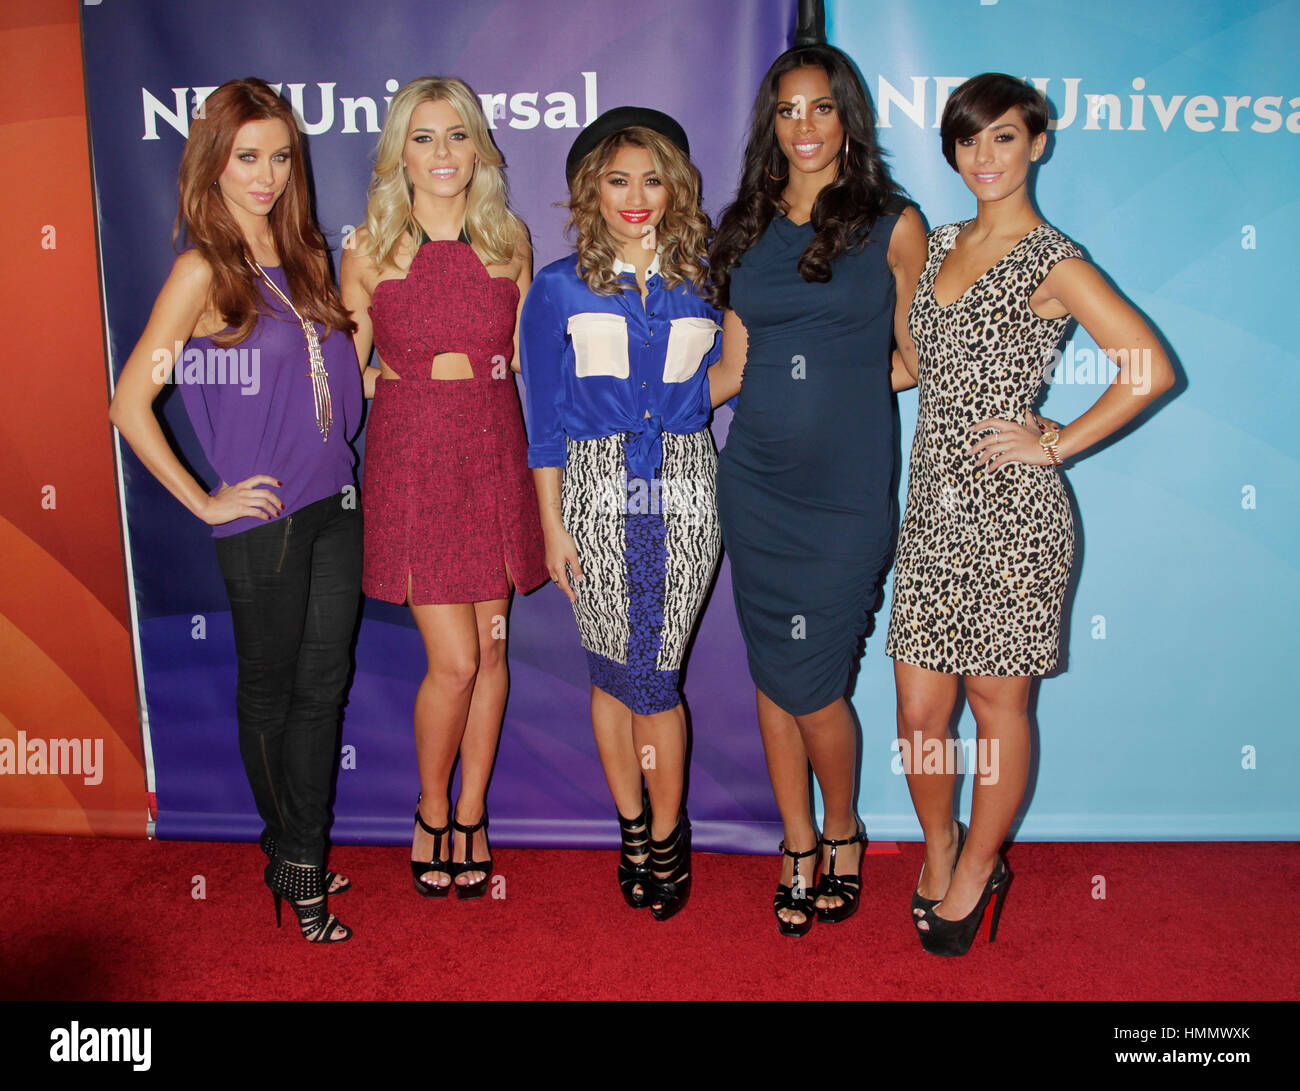 Una Healy, Mollie King, Vanessa White, Rochelle Humes, and Frankie Sandford of the pop singing group, The Saturdays, - Stock Image